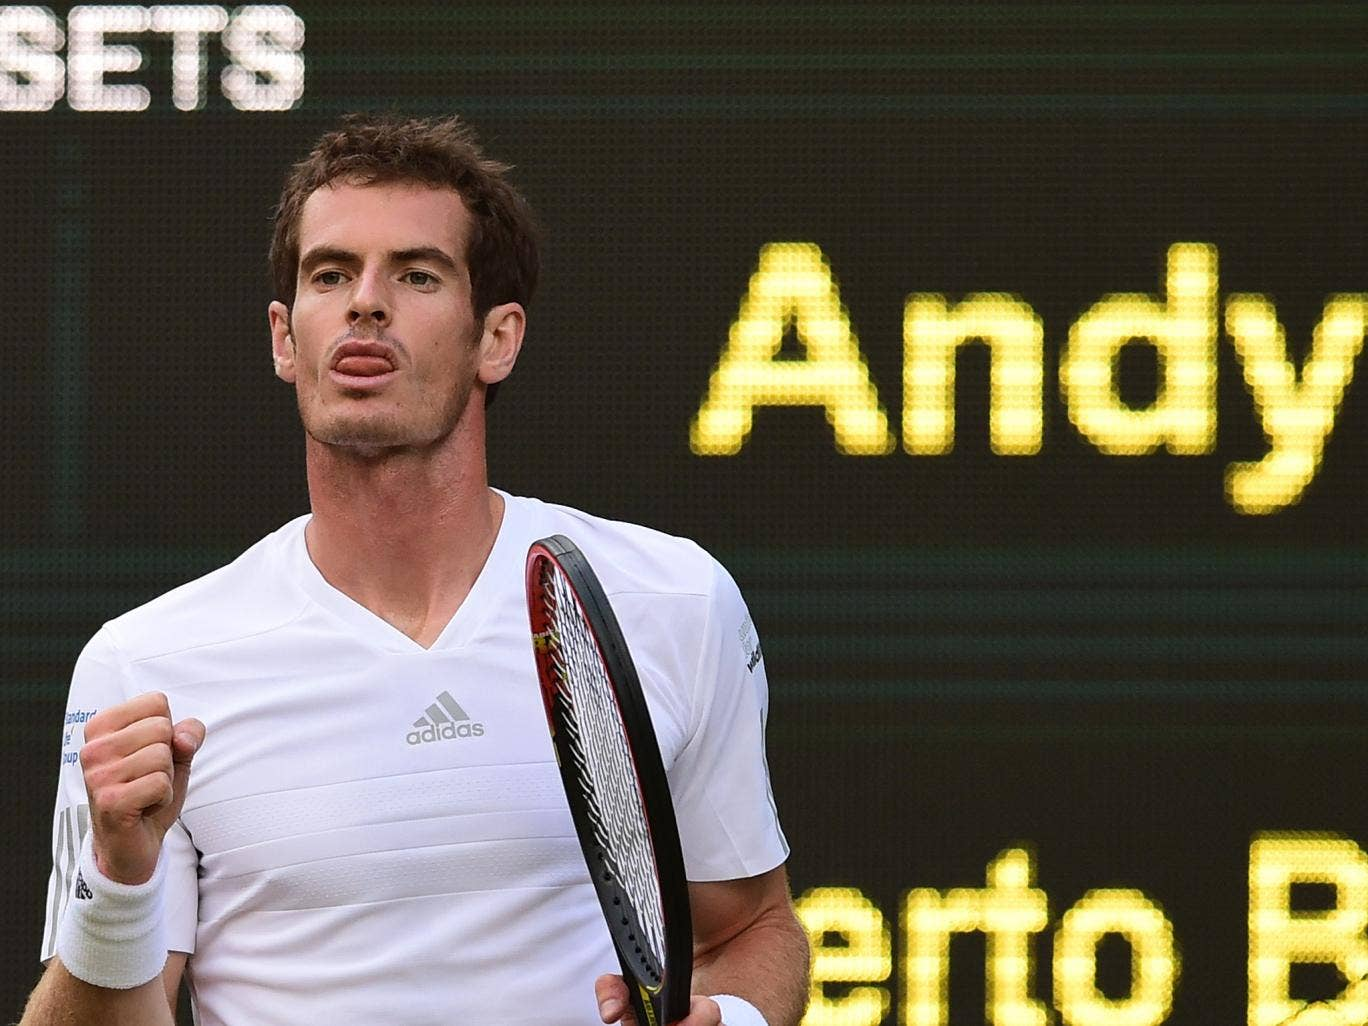 Andy Murray in action during his victory over Roberto Bautista